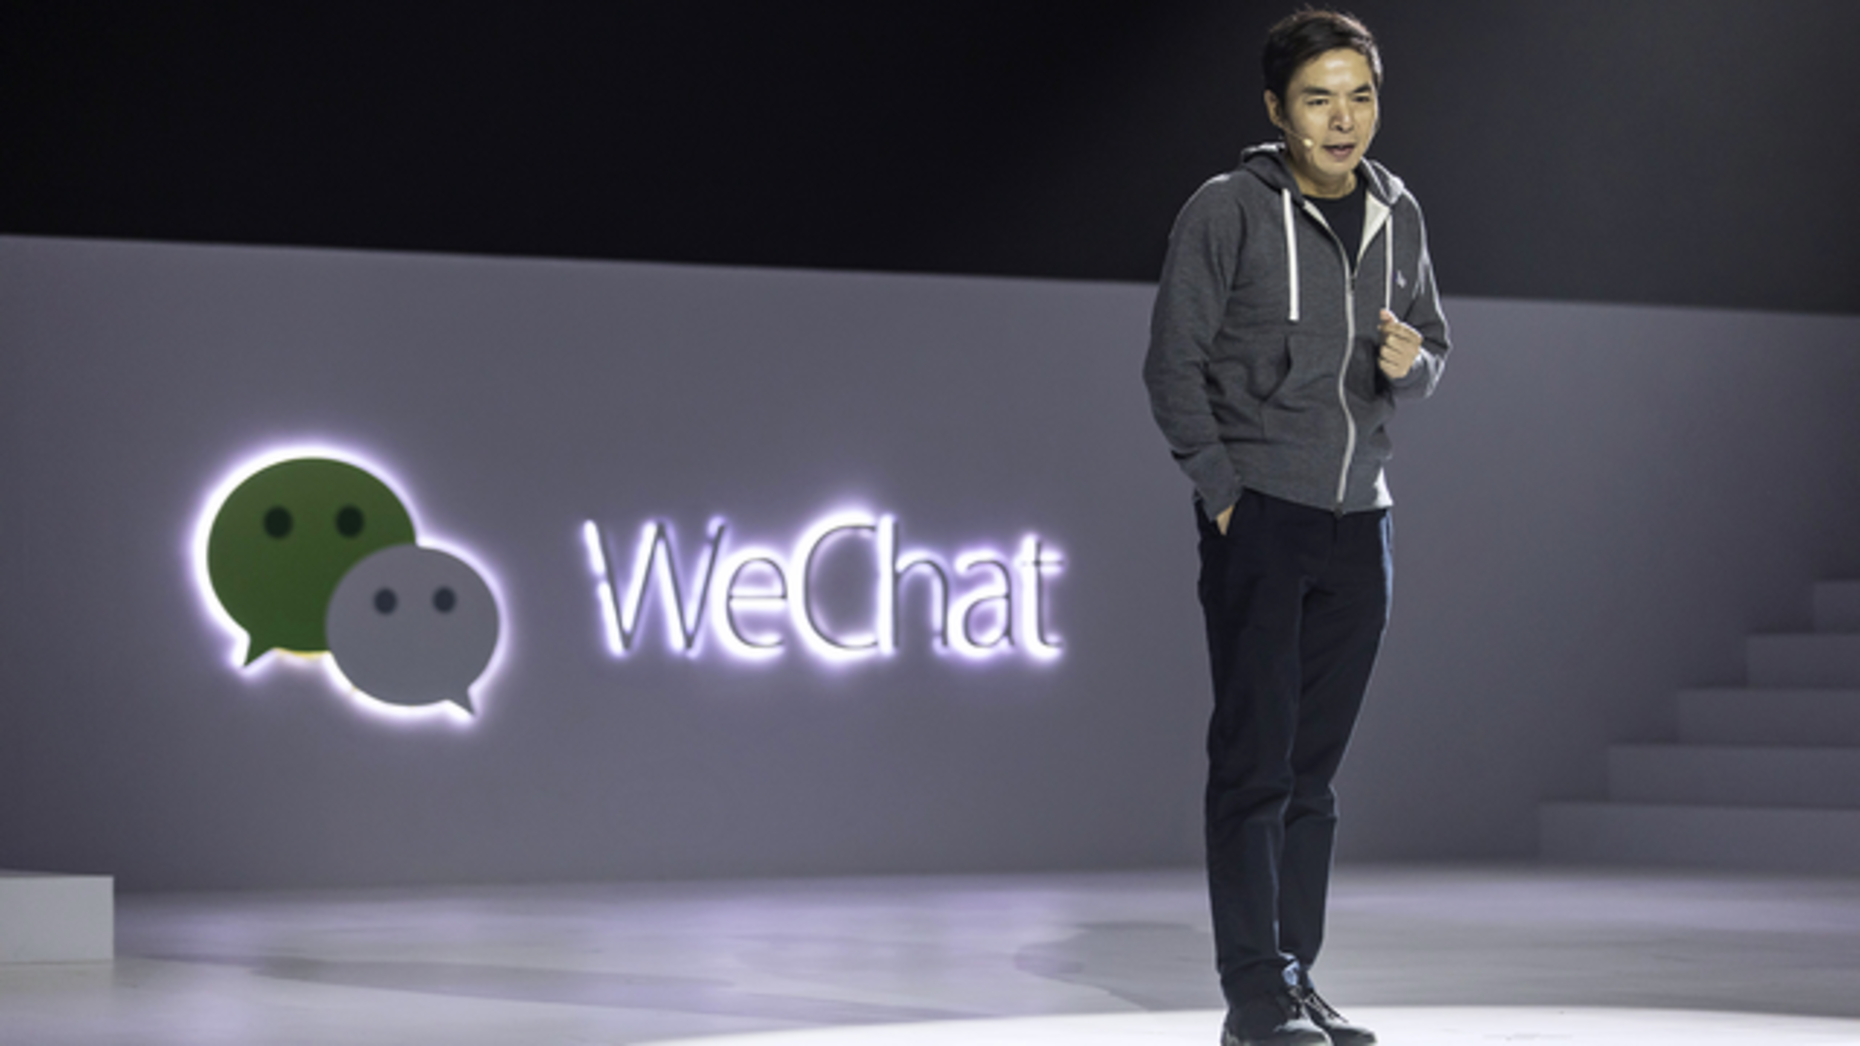 WeChat founder Allen Zhang speaking last month at a conference in Guangzhou, China. Photo by Bloomberg.